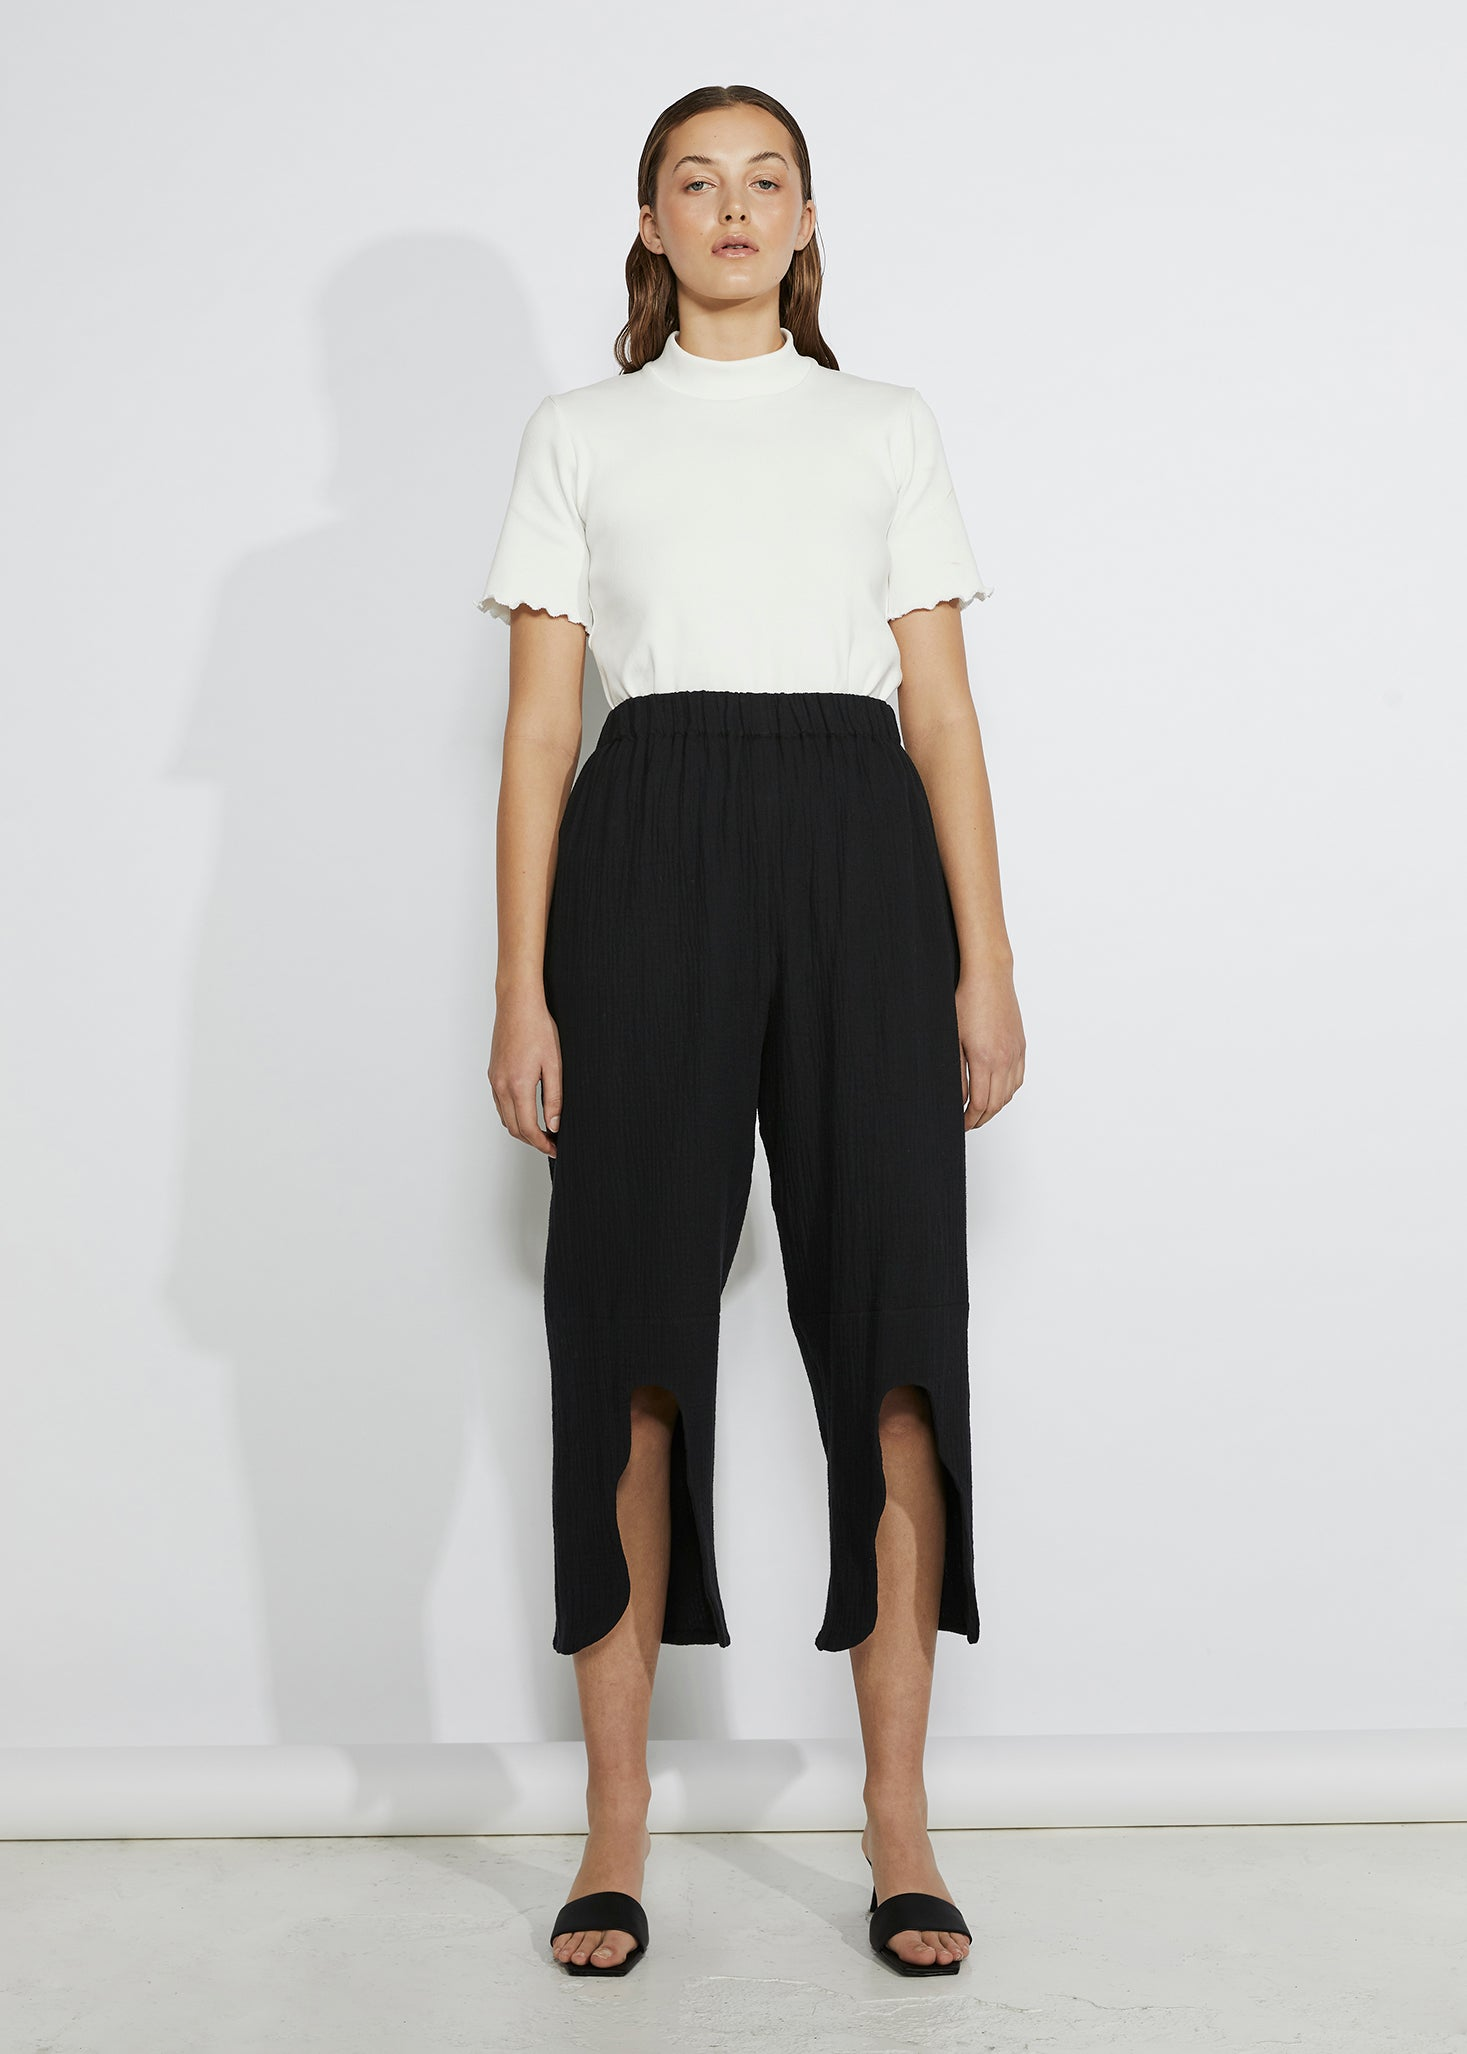 keegan heavy metal look book. Slow handmade fashion. White Tshirt frills, black cut out pants